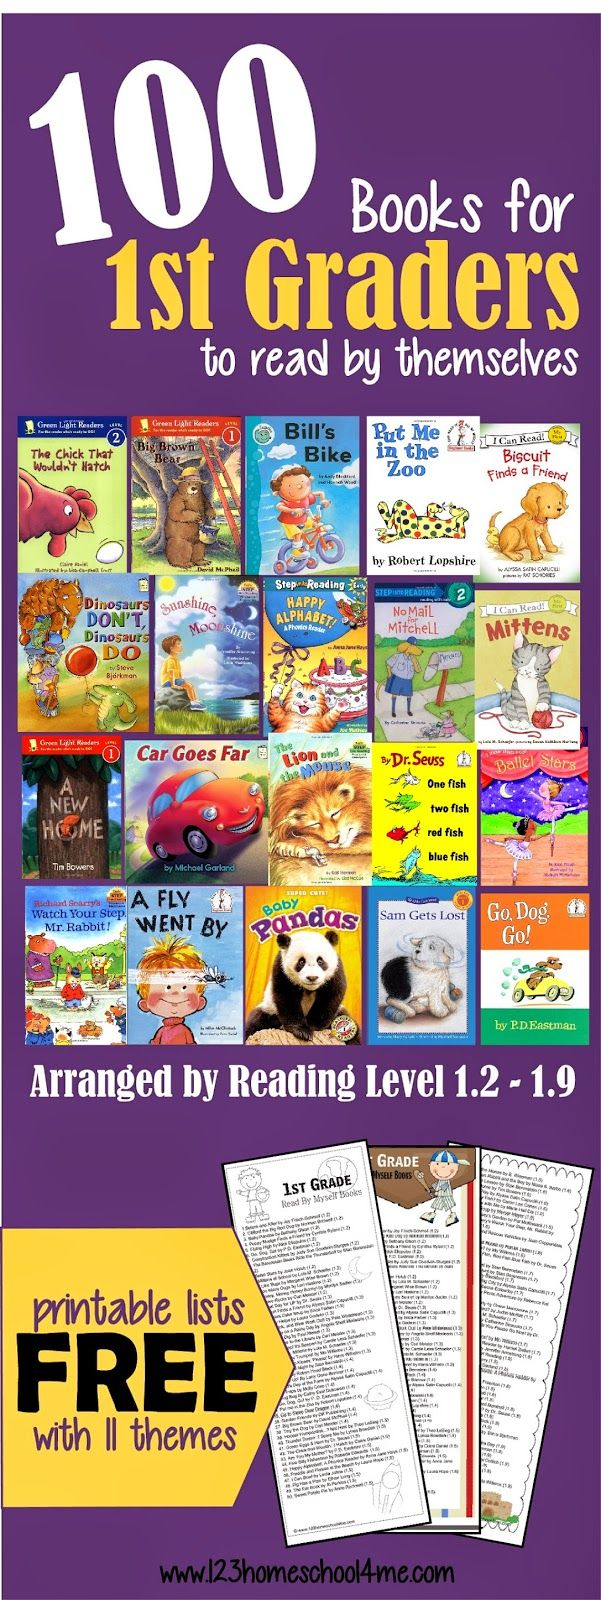 100 Books for 1st Graders to Read by themselves sorted by reading level 1.2 - 1.9! Includes free printable bookmark with 1st grade book list! #reading #1stgrade